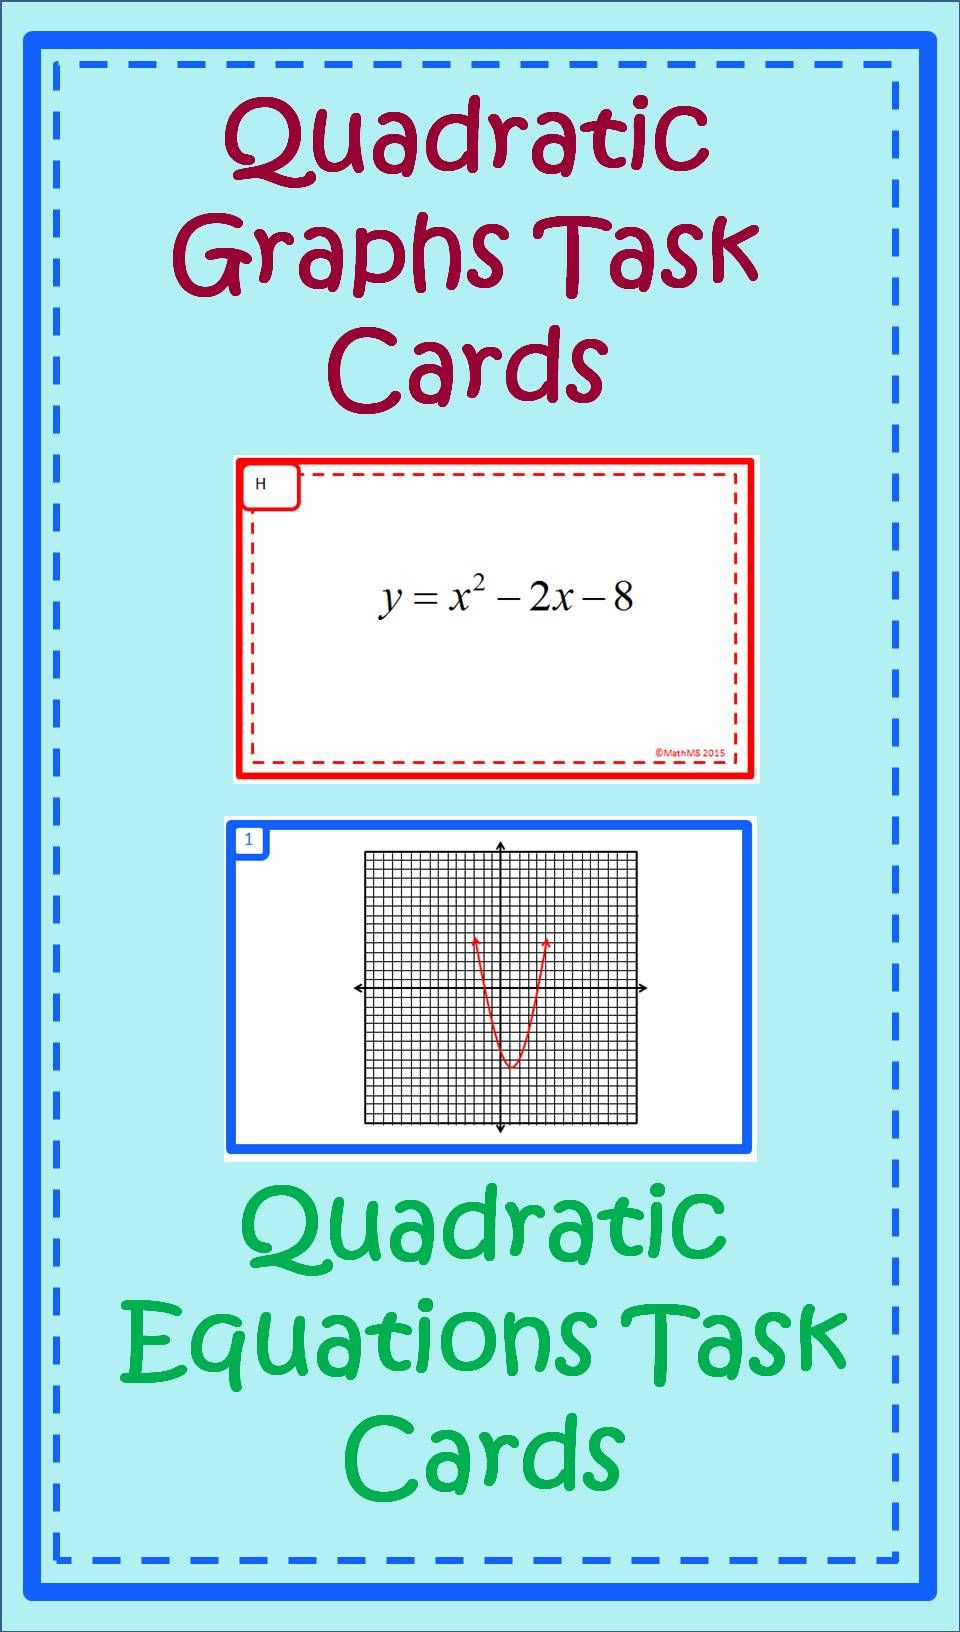 This Product Is Two Sets Of Task Cards A Set Of 24 Graphs Of Parabolas And A Set Of 24 Quadratic Equations At The Begi Quadratics Solving Quadratics Graphing [ 1632 x 960 Pixel ]